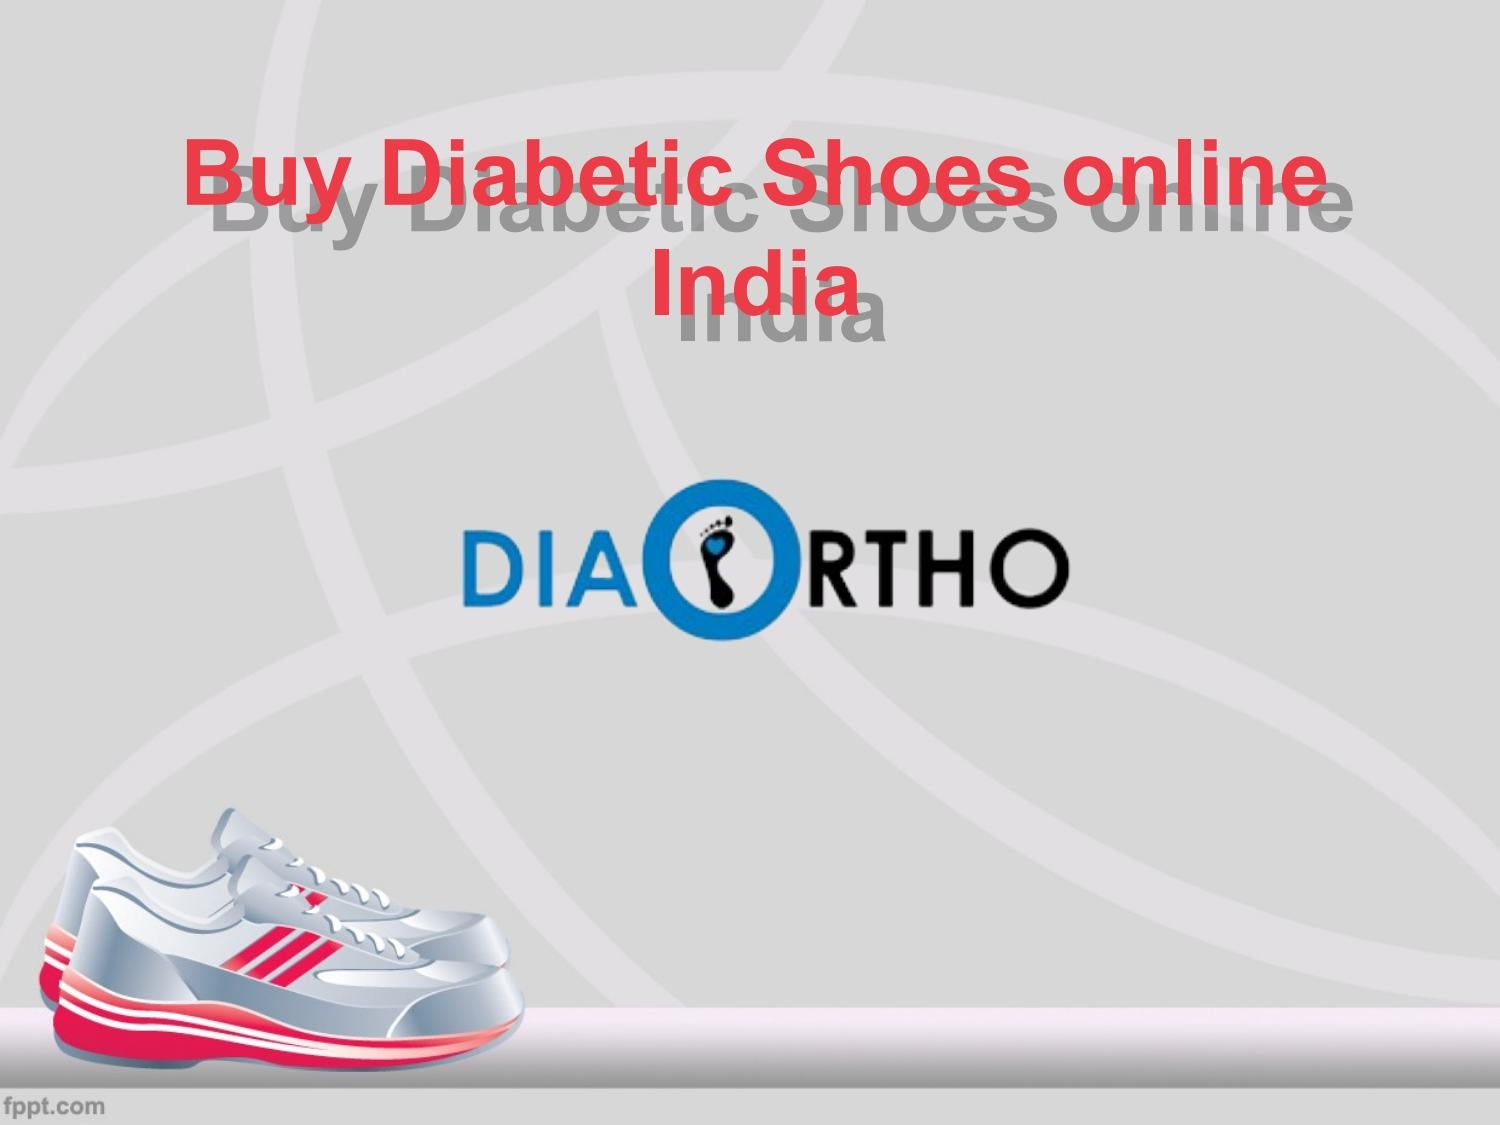 where to purchase diabetic shoes